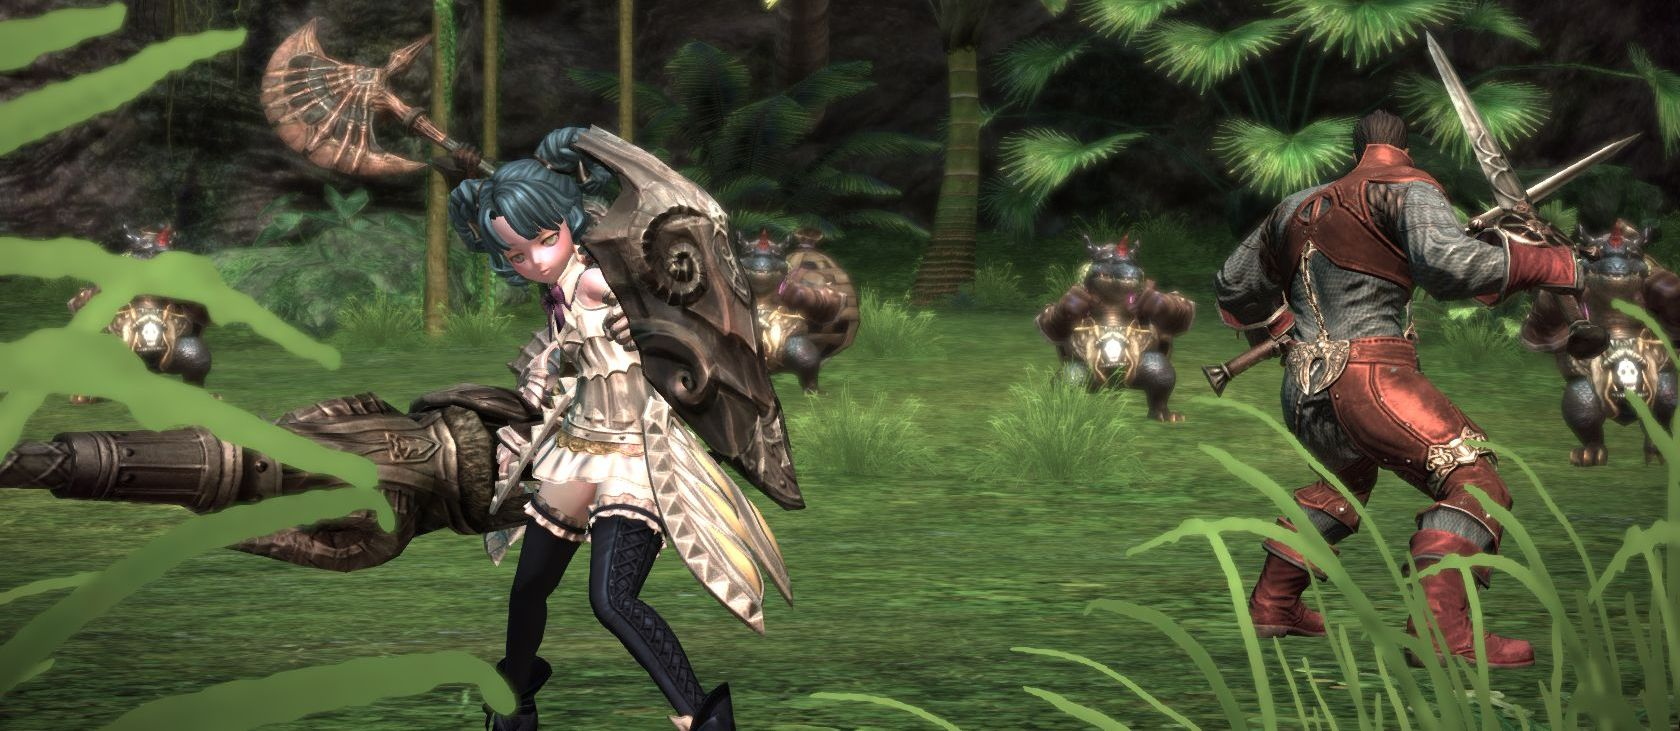 clave games opening gameplay trailer experience preview online media removed heres tera